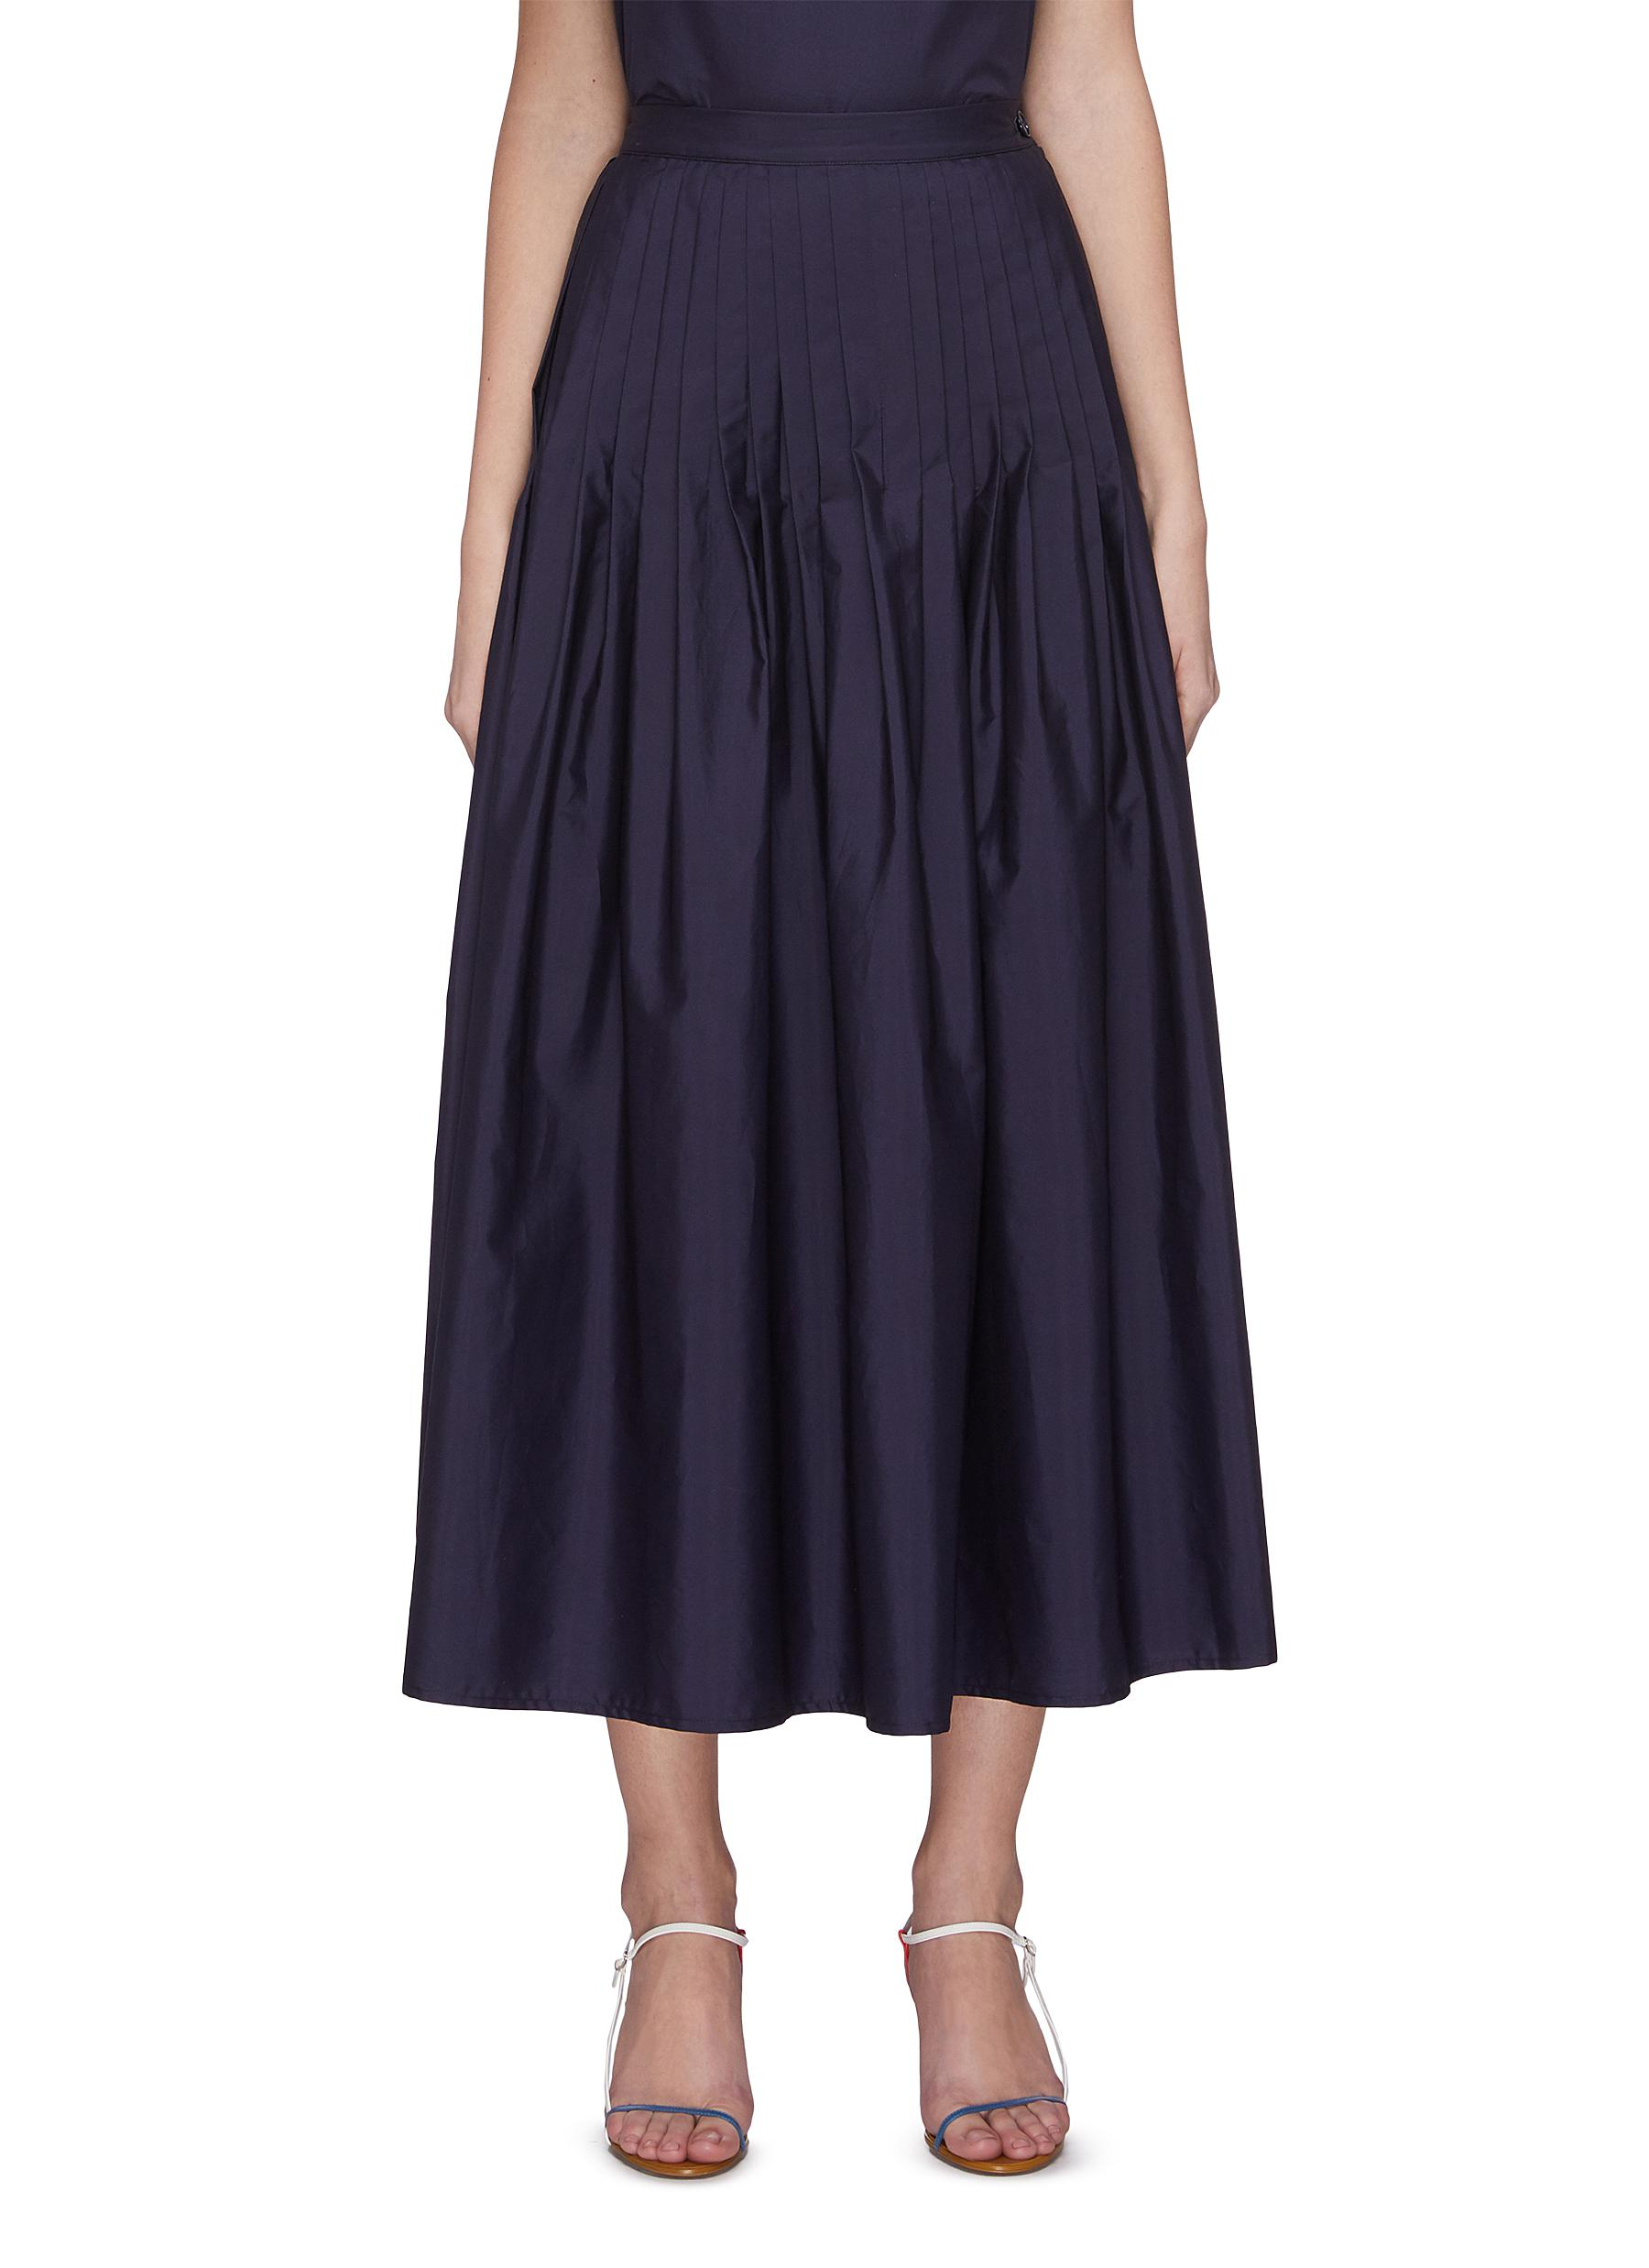 Buy Barena Skirts 'Camelia' pleated maxi skirt